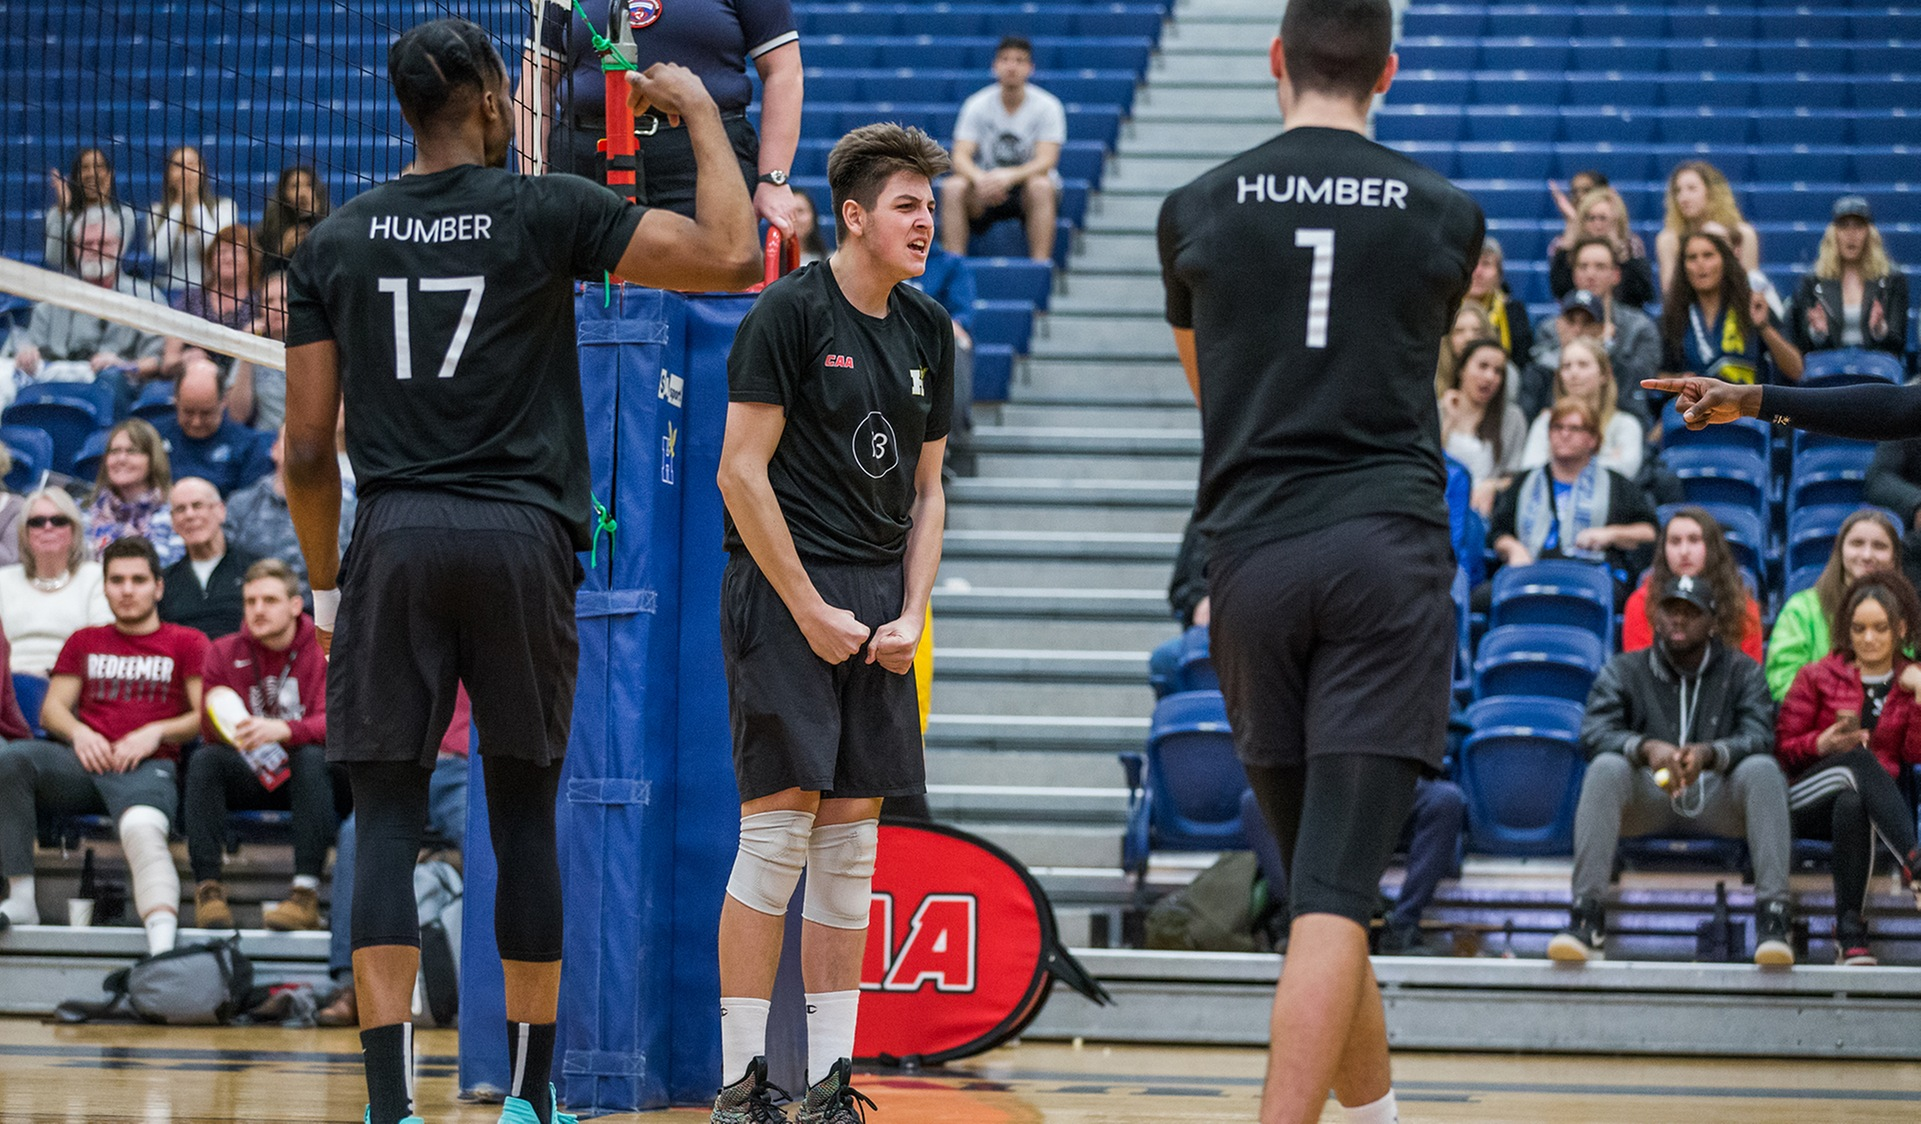 No. 5 HUMBER ADVANCES TO FINALS WITH WIN OVER NIAGARA; EARNS NATIONALS BERTH